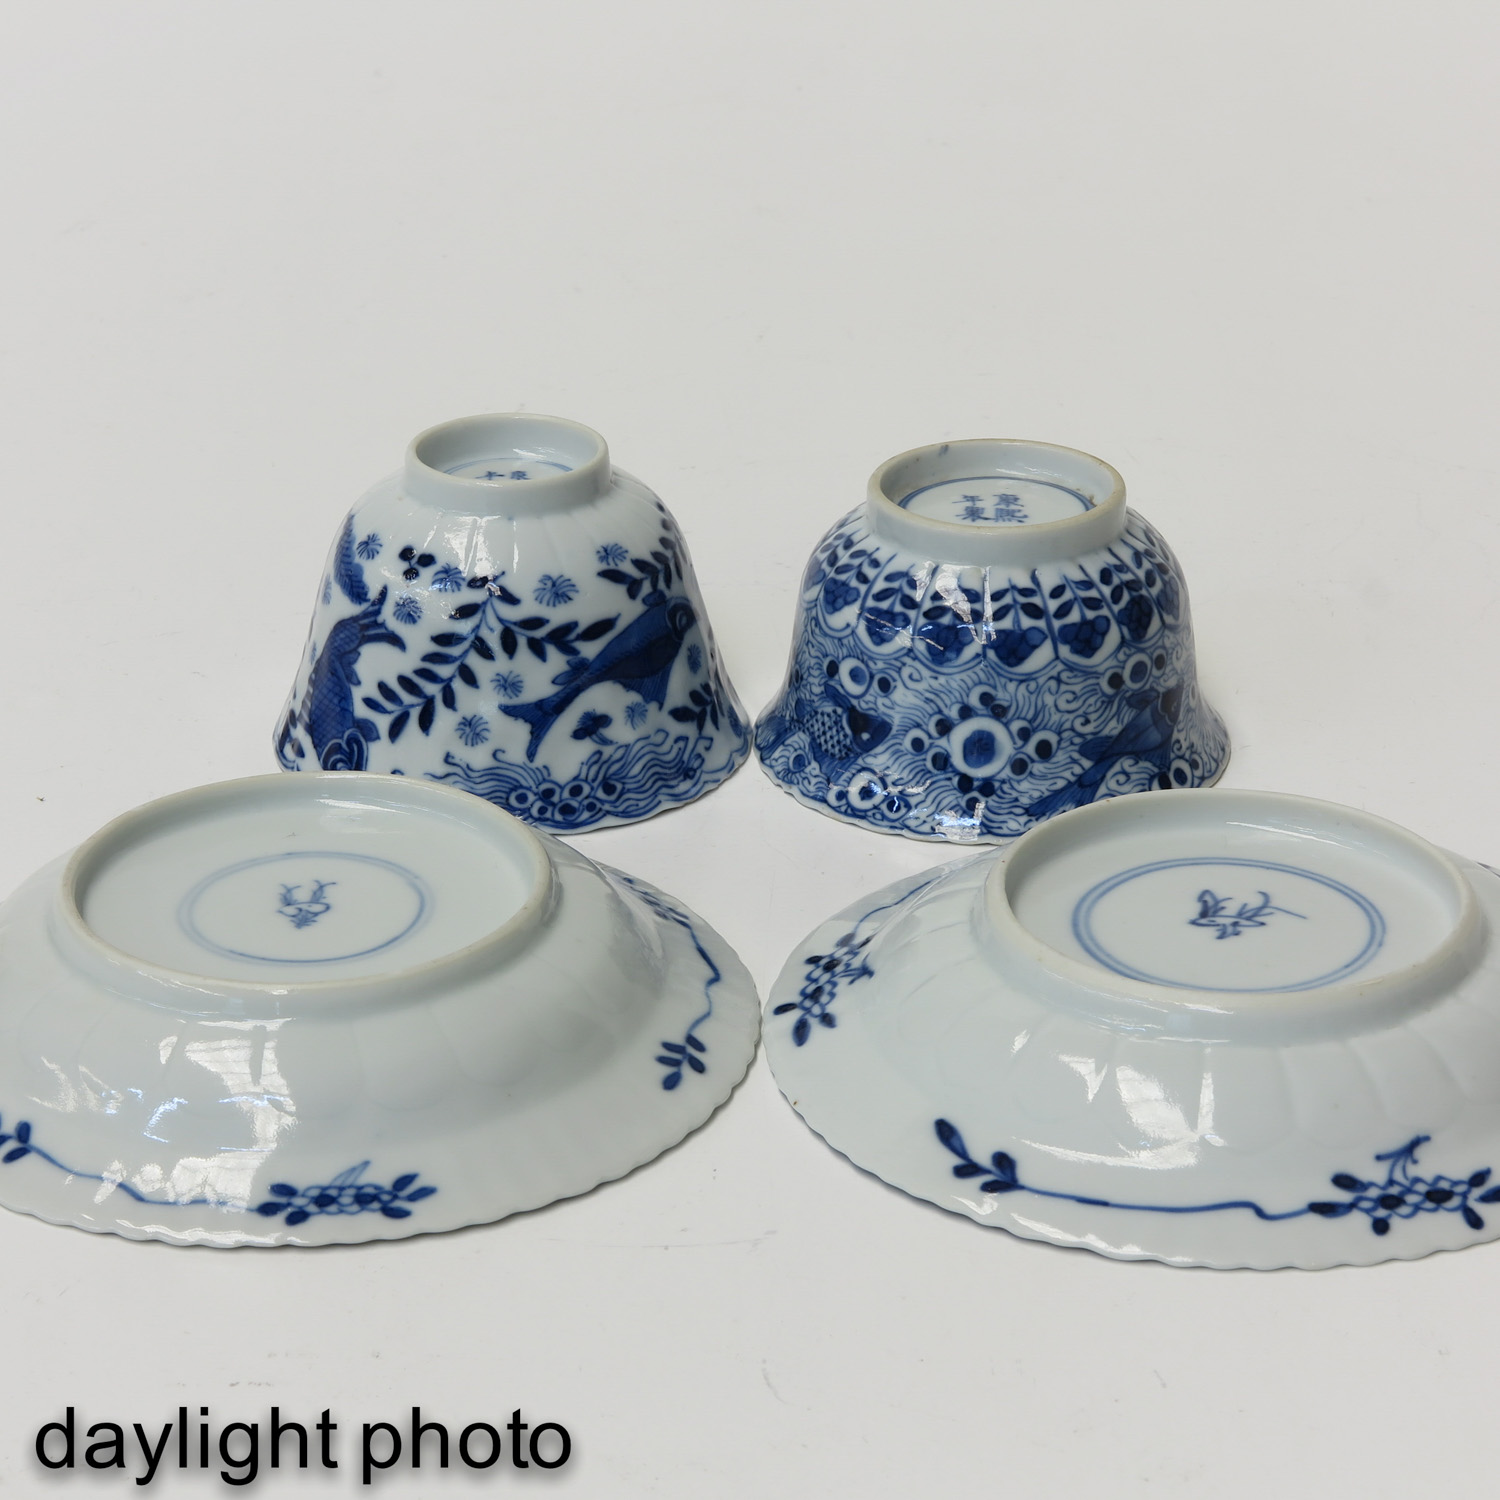 A Series of 12 Cups and Saucers - Image 10 of 10